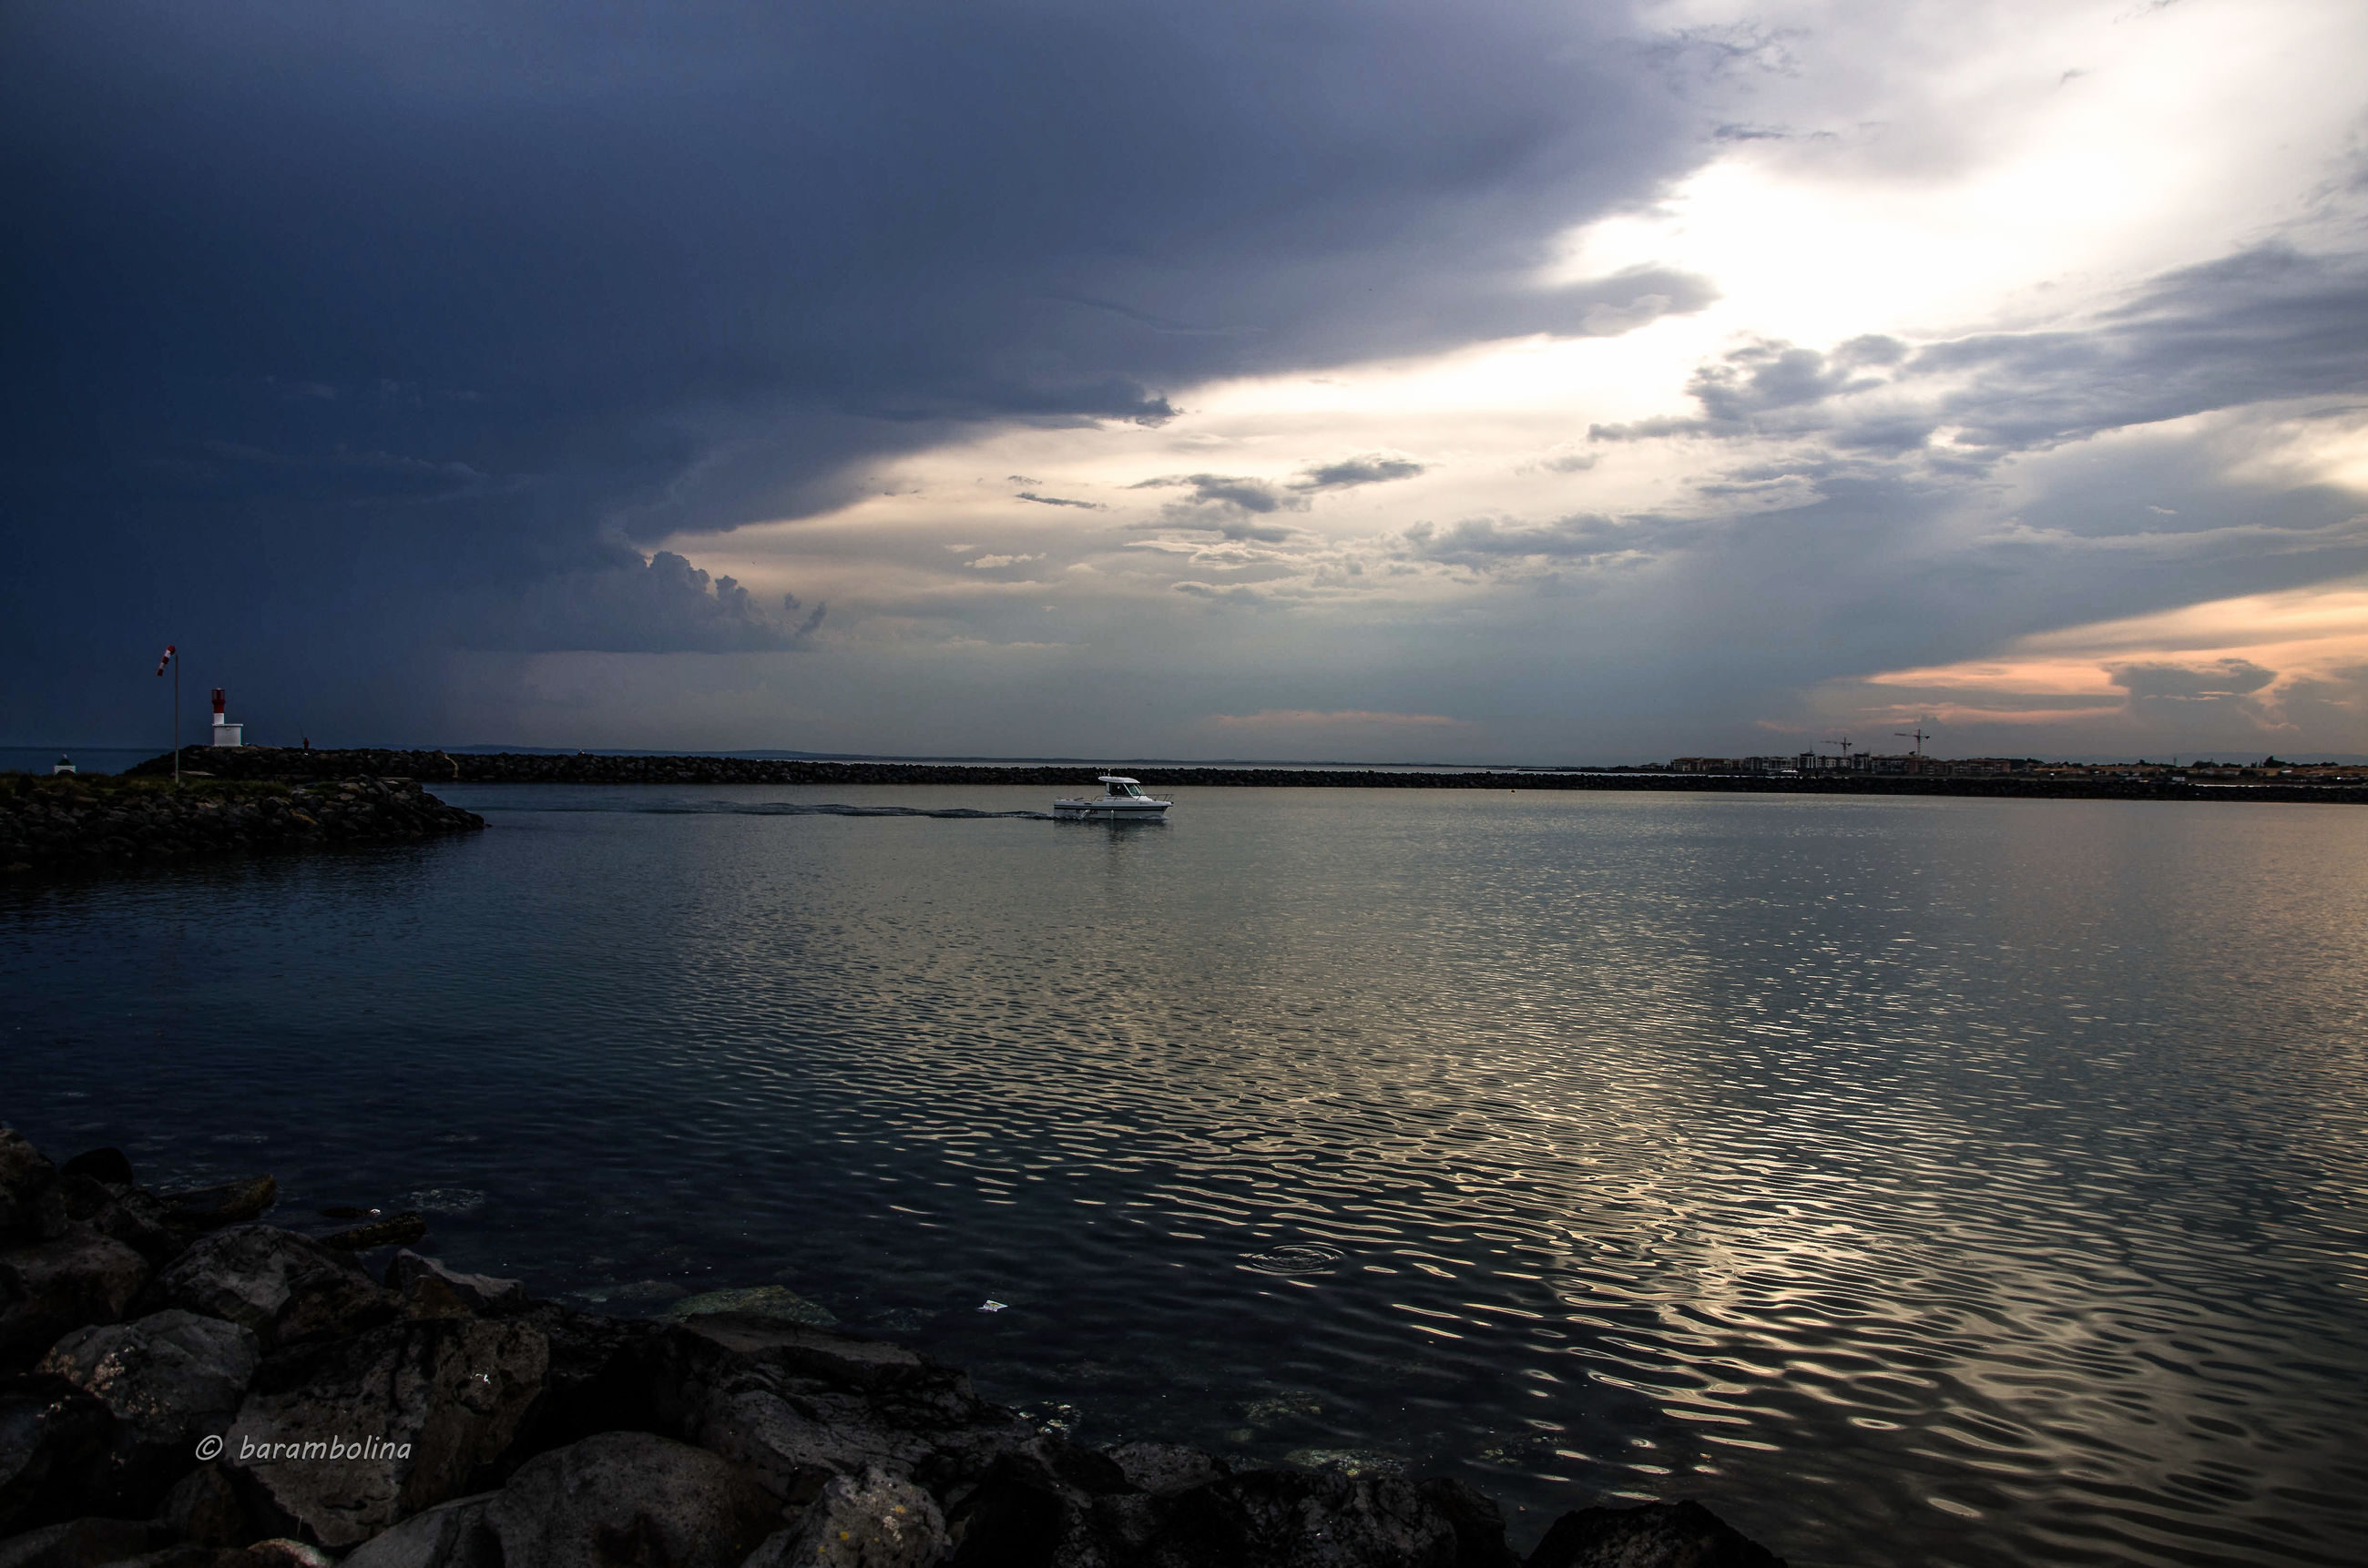 water, sky, sea, cloud - sky, scenics, tranquil scene, tranquility, beauty in nature, cloudy, sunset, nature, horizon over water, waterfront, cloud, idyllic, reflection, rippled, weather, dusk, silhouette